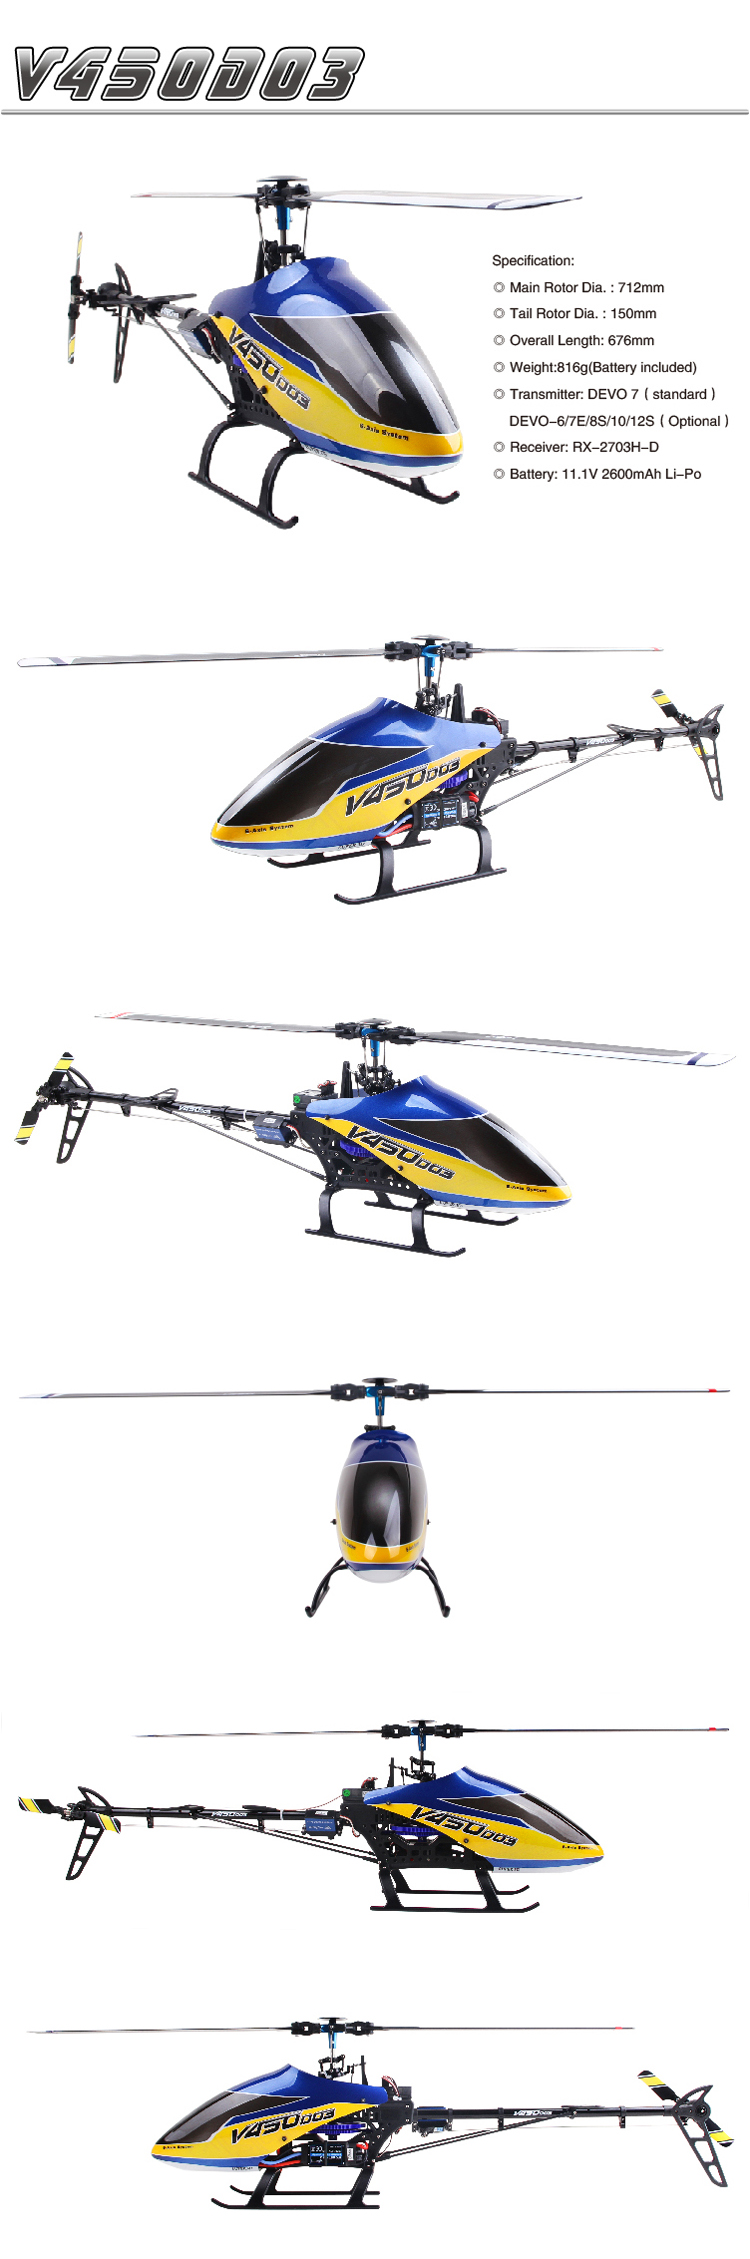 Walkera V450D03 with DEVO 8S Transmitter 6CH 3D 6-axis-Gyro Flybarless Helicopter RTF 2.4Ghz